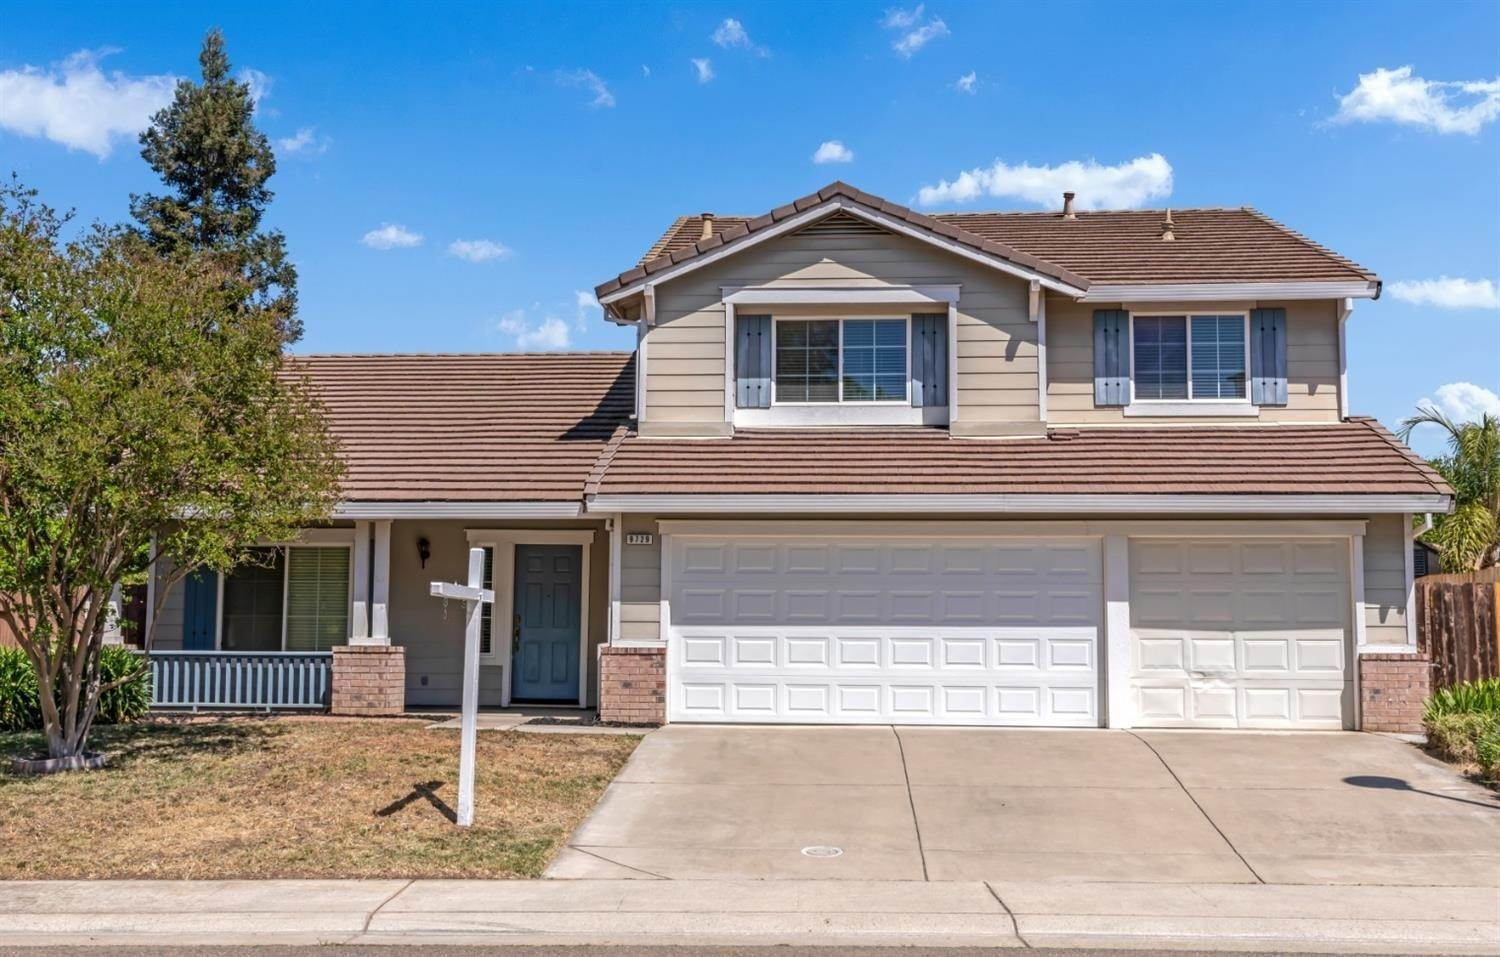 Single Family Homes for Active at 9729 Dynasty Way Elk Grove, California 95624 United States